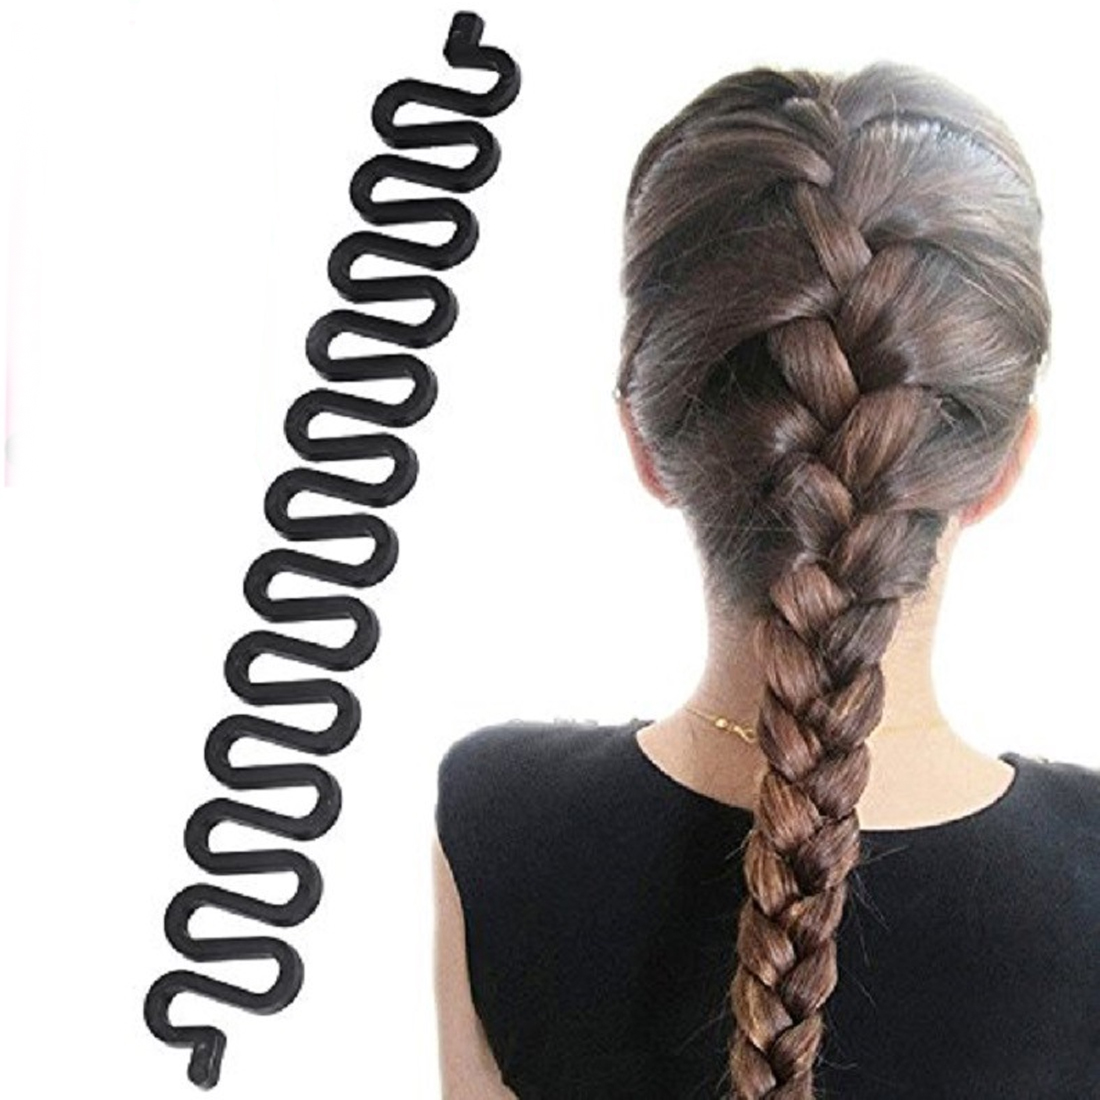 Sale 1 PC Women Hair Twist Styling Hair Band Accessories Disk Device Hairpins DIY Fish Bones Hair Fish Bone Braiding Hair Clip in Women 39 s Hair Accessories from Apparel Accessories